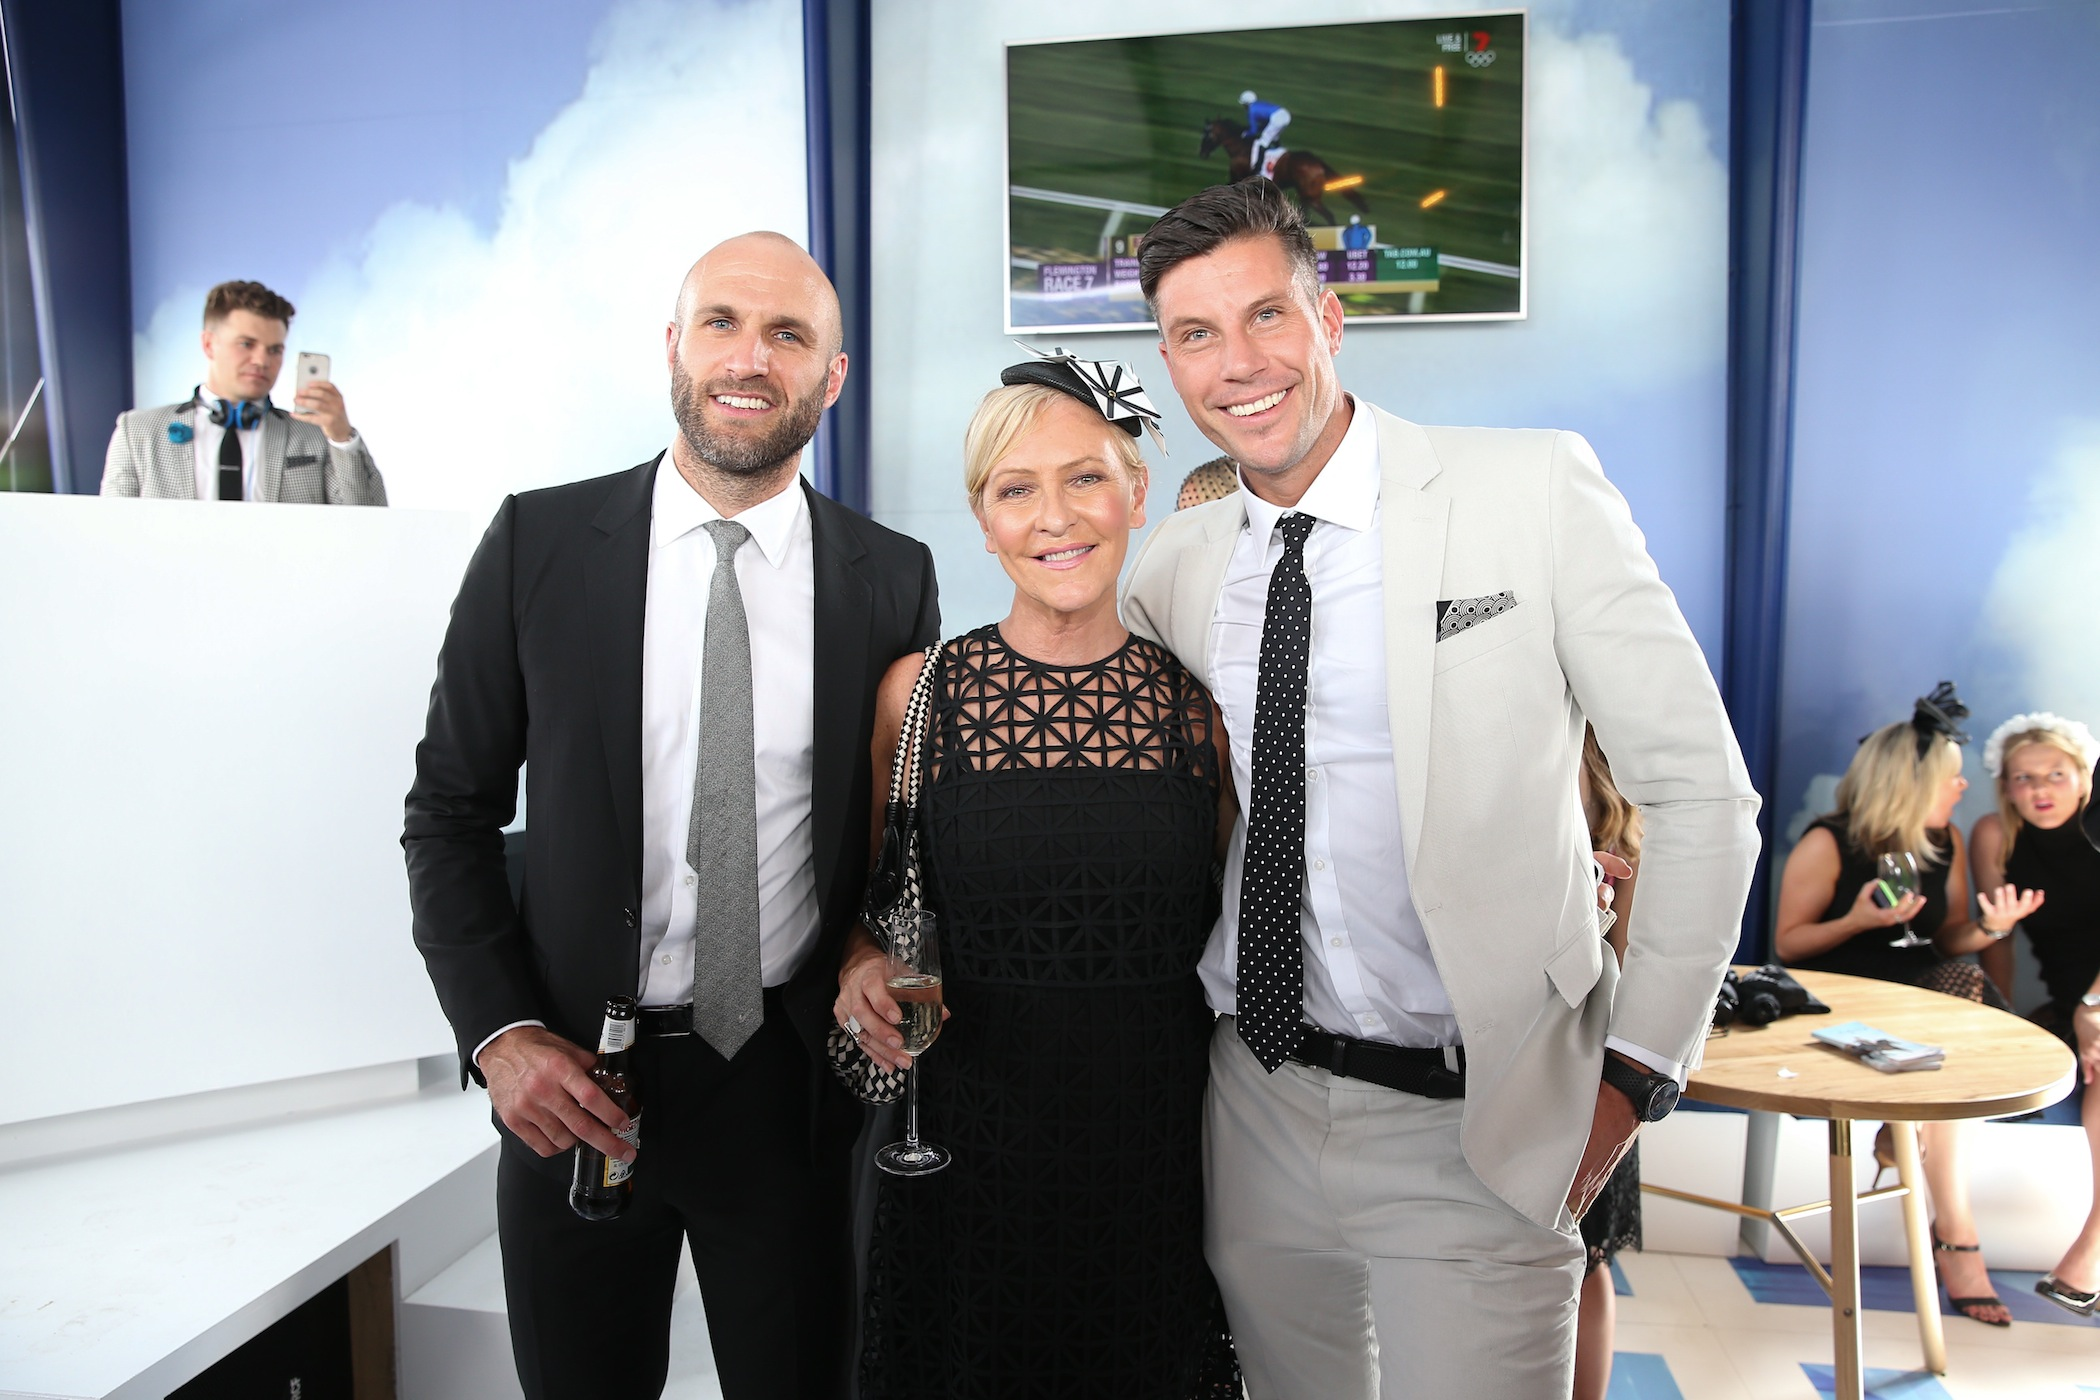 lavazza-mcc-2015-chris-judd-jo-hall-sam-woodjpg.jpg